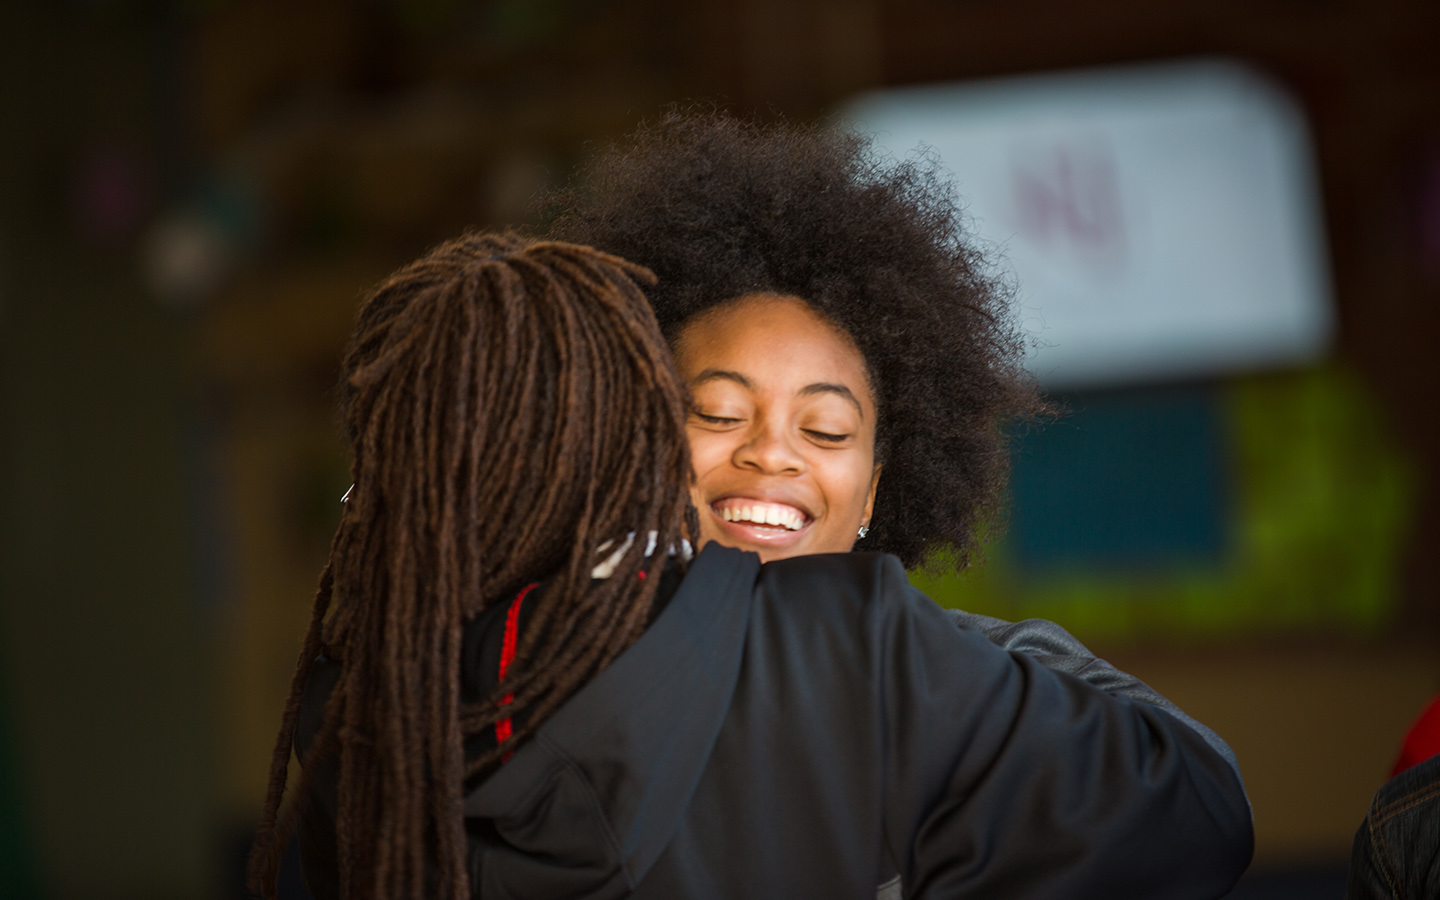 Two HNU students hugging after graduation ceremony